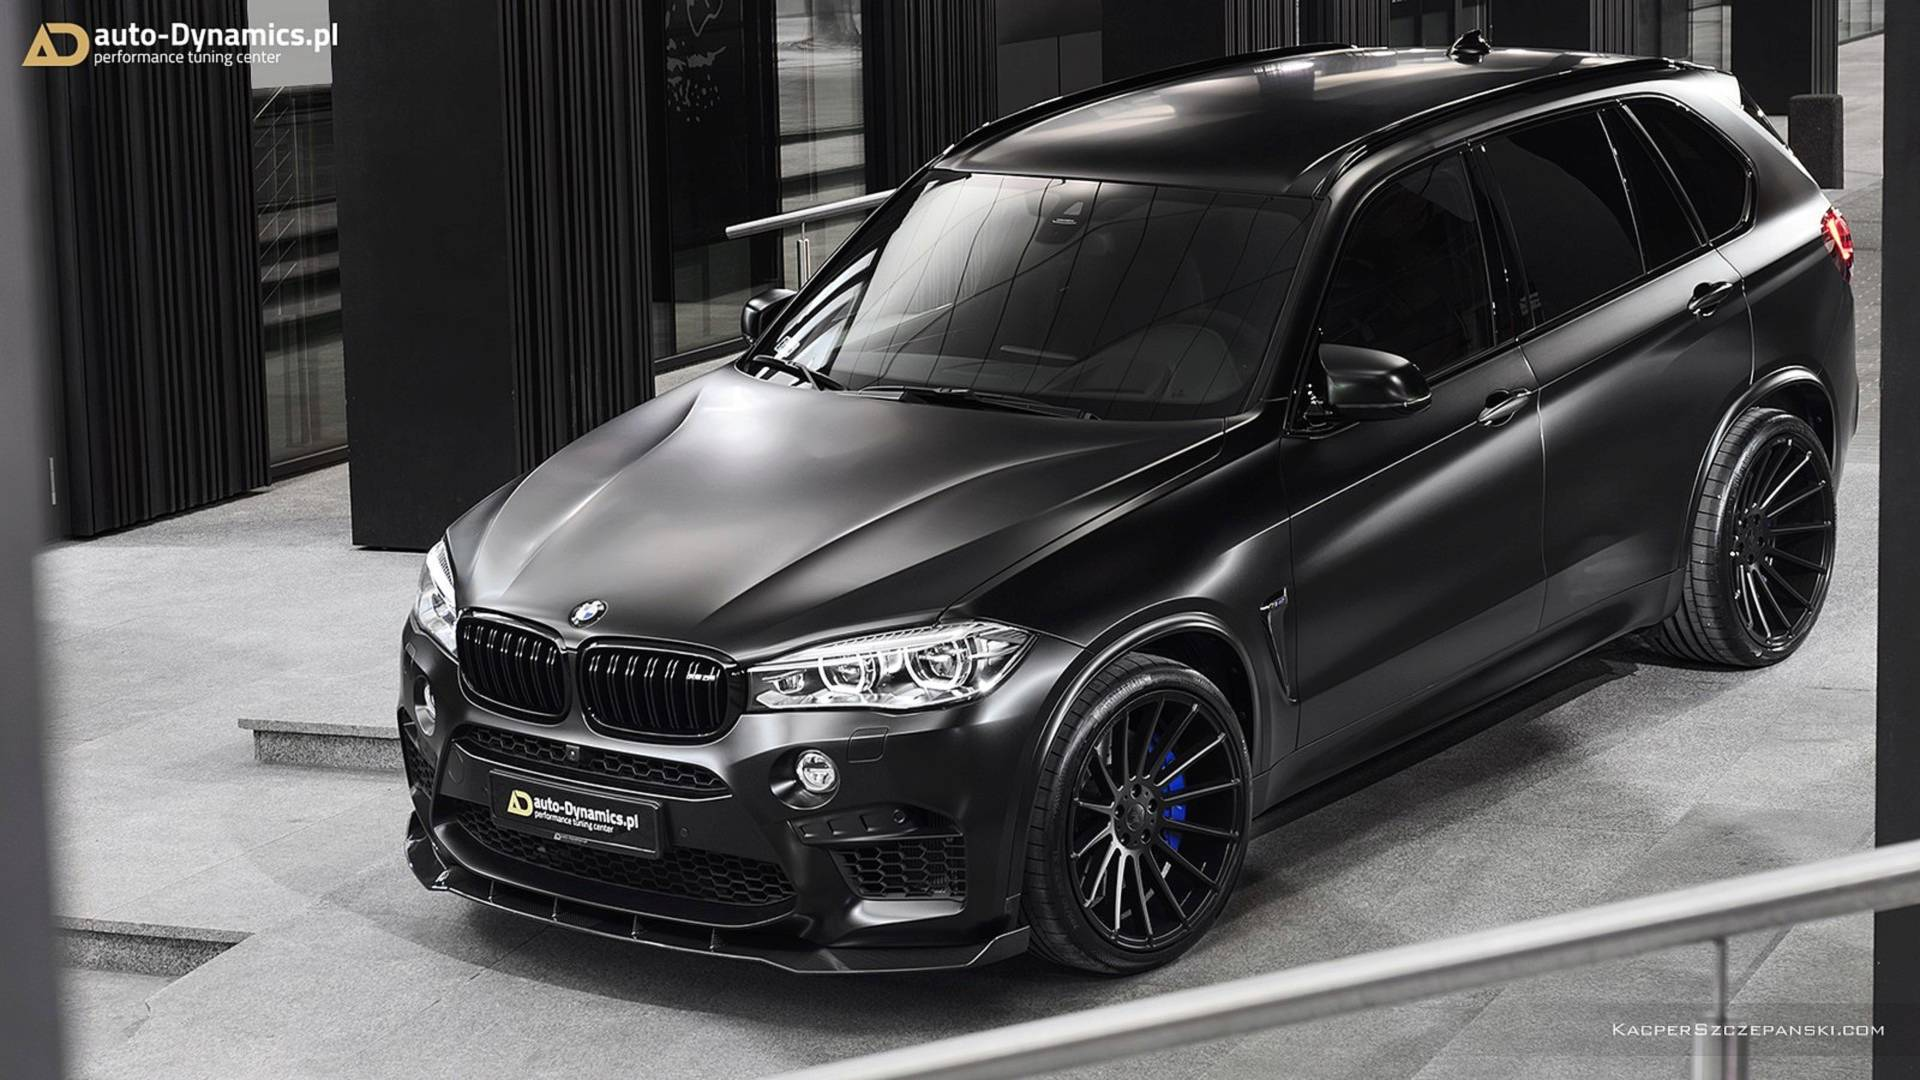 BMW X5 M Avalanche has 670 hp, is very angry